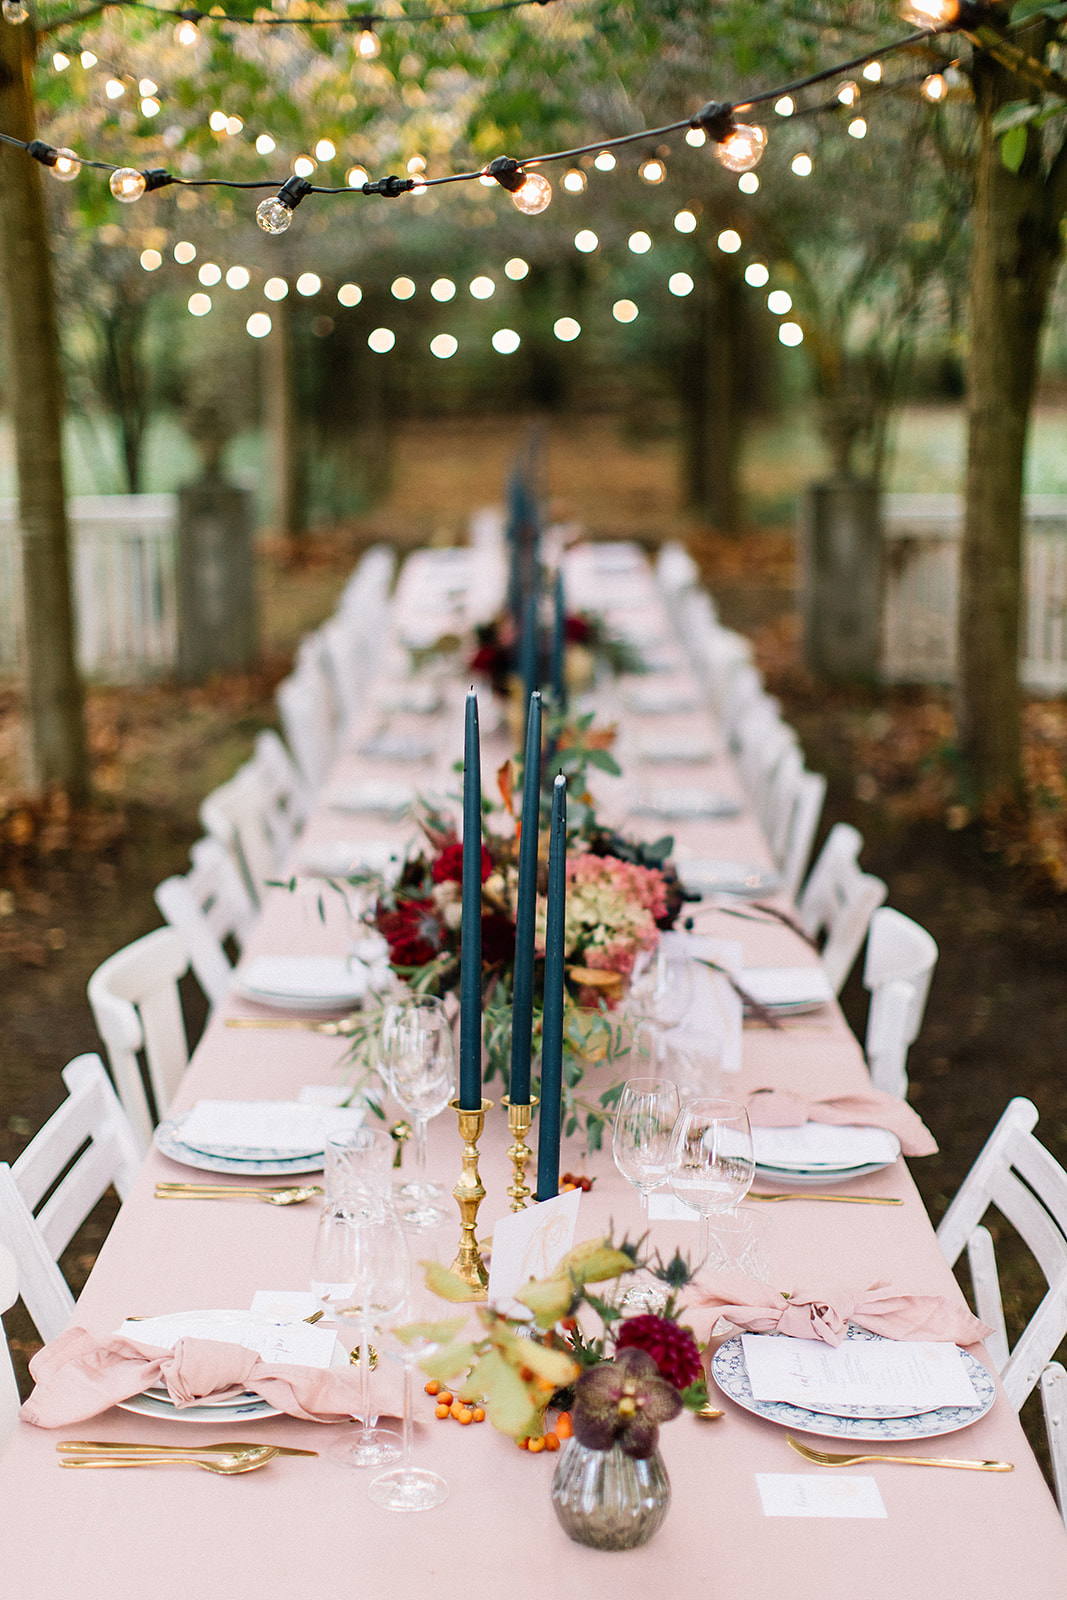 Hochzeit Styled Shoot Table Setiting